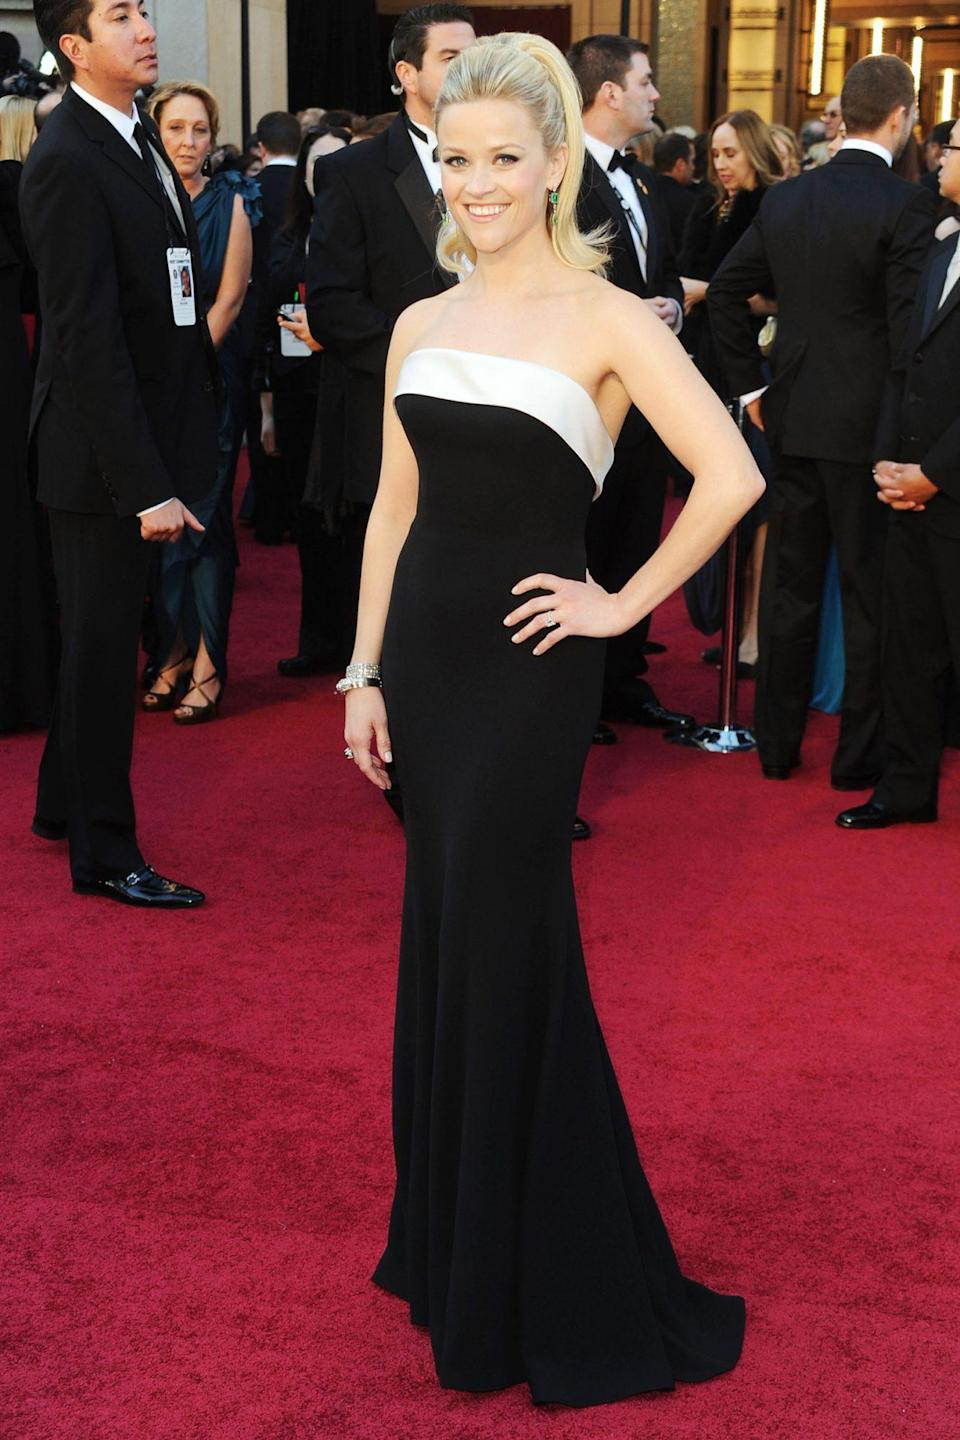 <p>Reese Witherspoon's black-and-white strapless Armani Privé gown paired with her high ponytail became an instantly iconic look. </p>